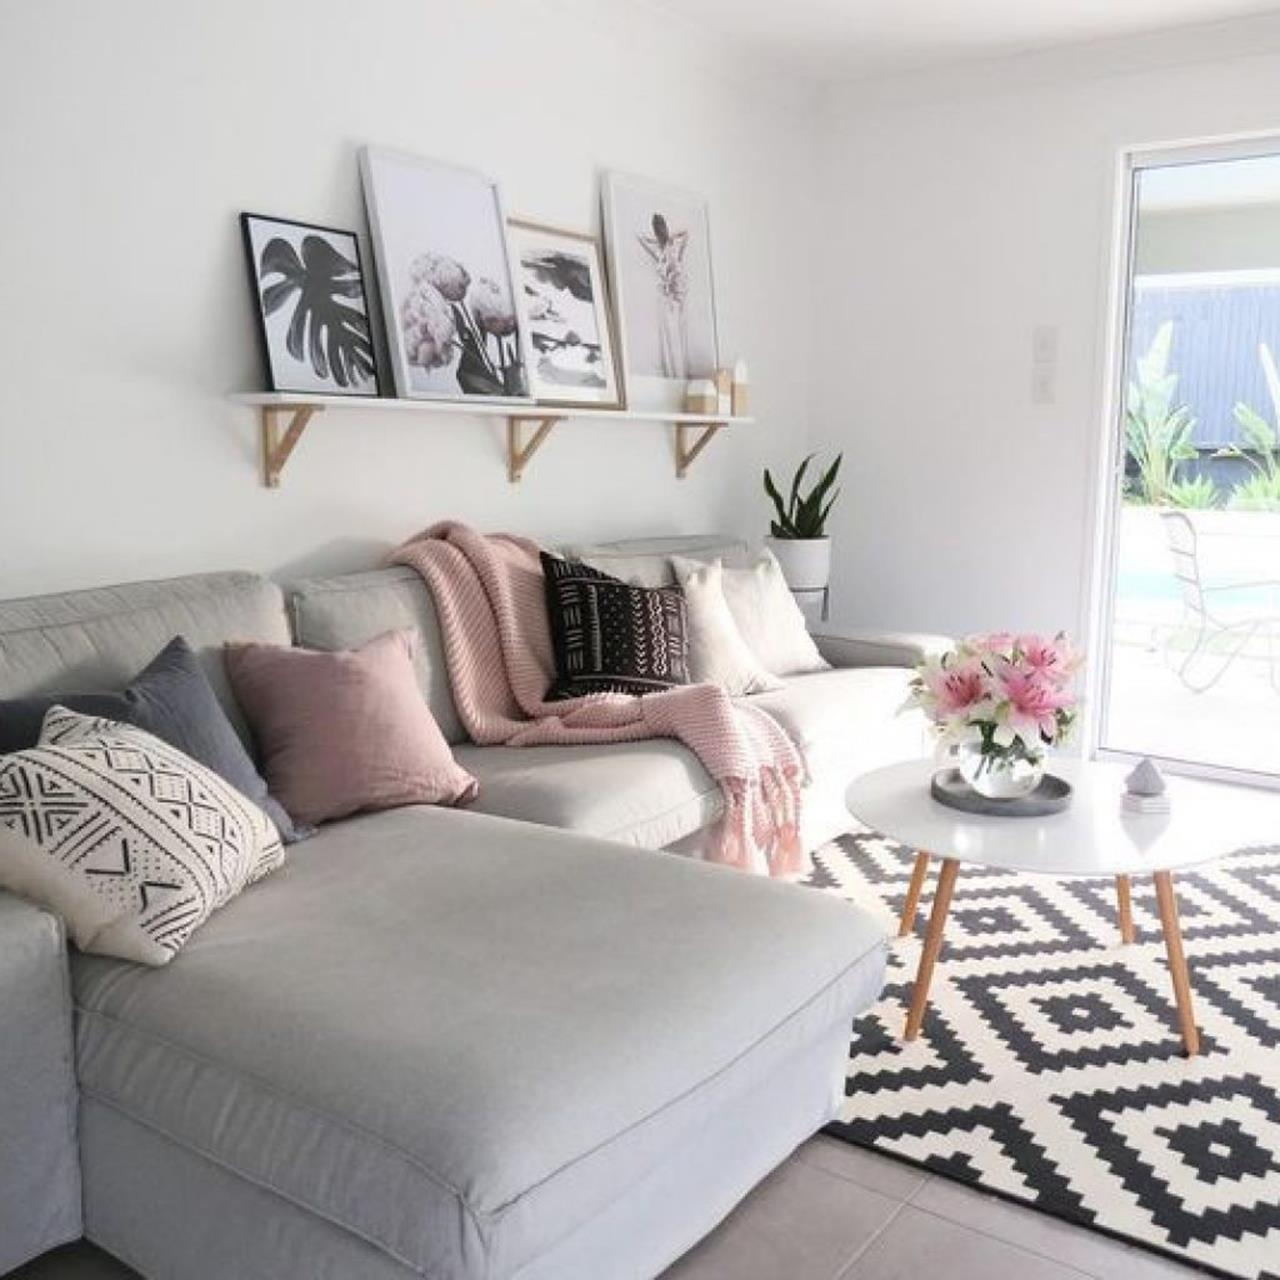 Shabby Chic Living Room Decorating on A Budget 23